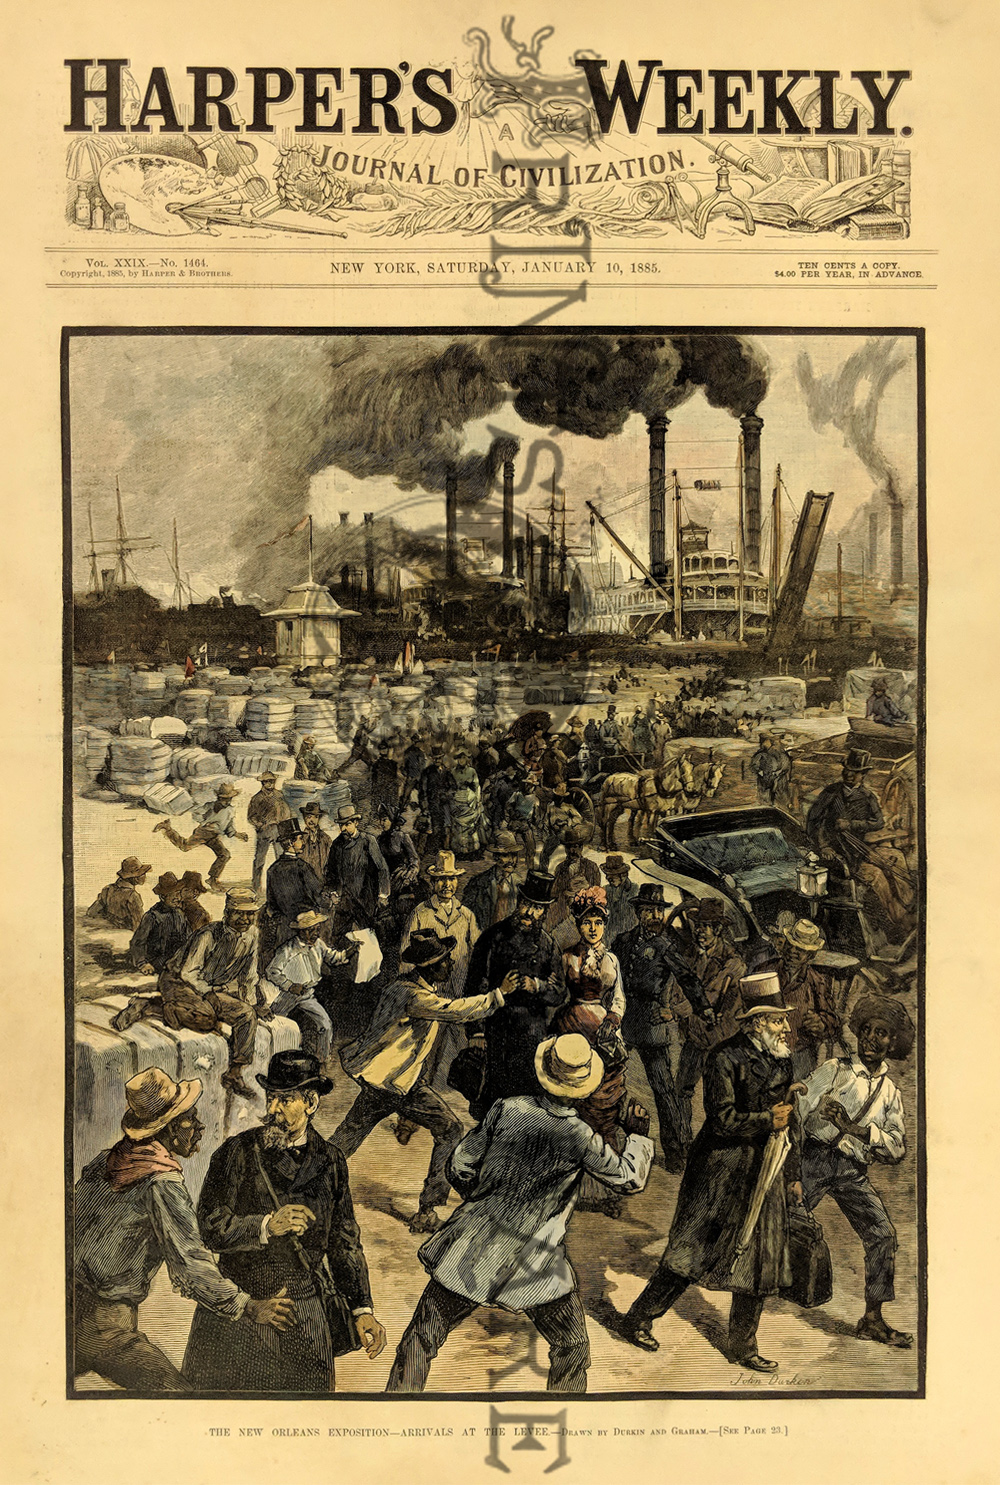 010no: Arrival at Levee - Steamboats in background. Crowds coming for 1885  Cotton Exposition. Hand colored, wood engraving. 16 x 11 in.